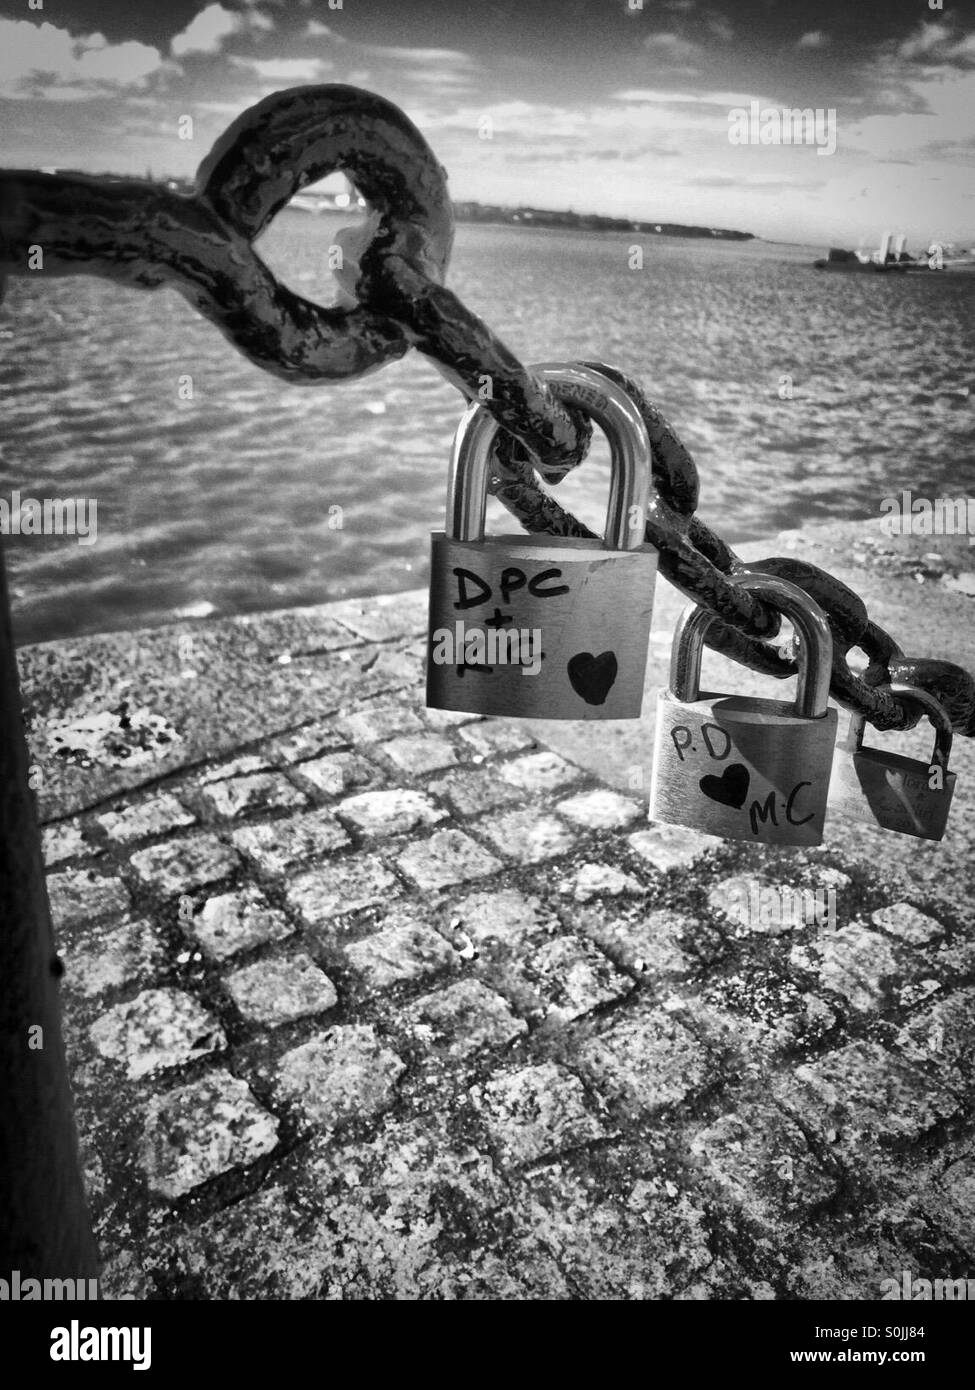 Locks and dock - Stock Image